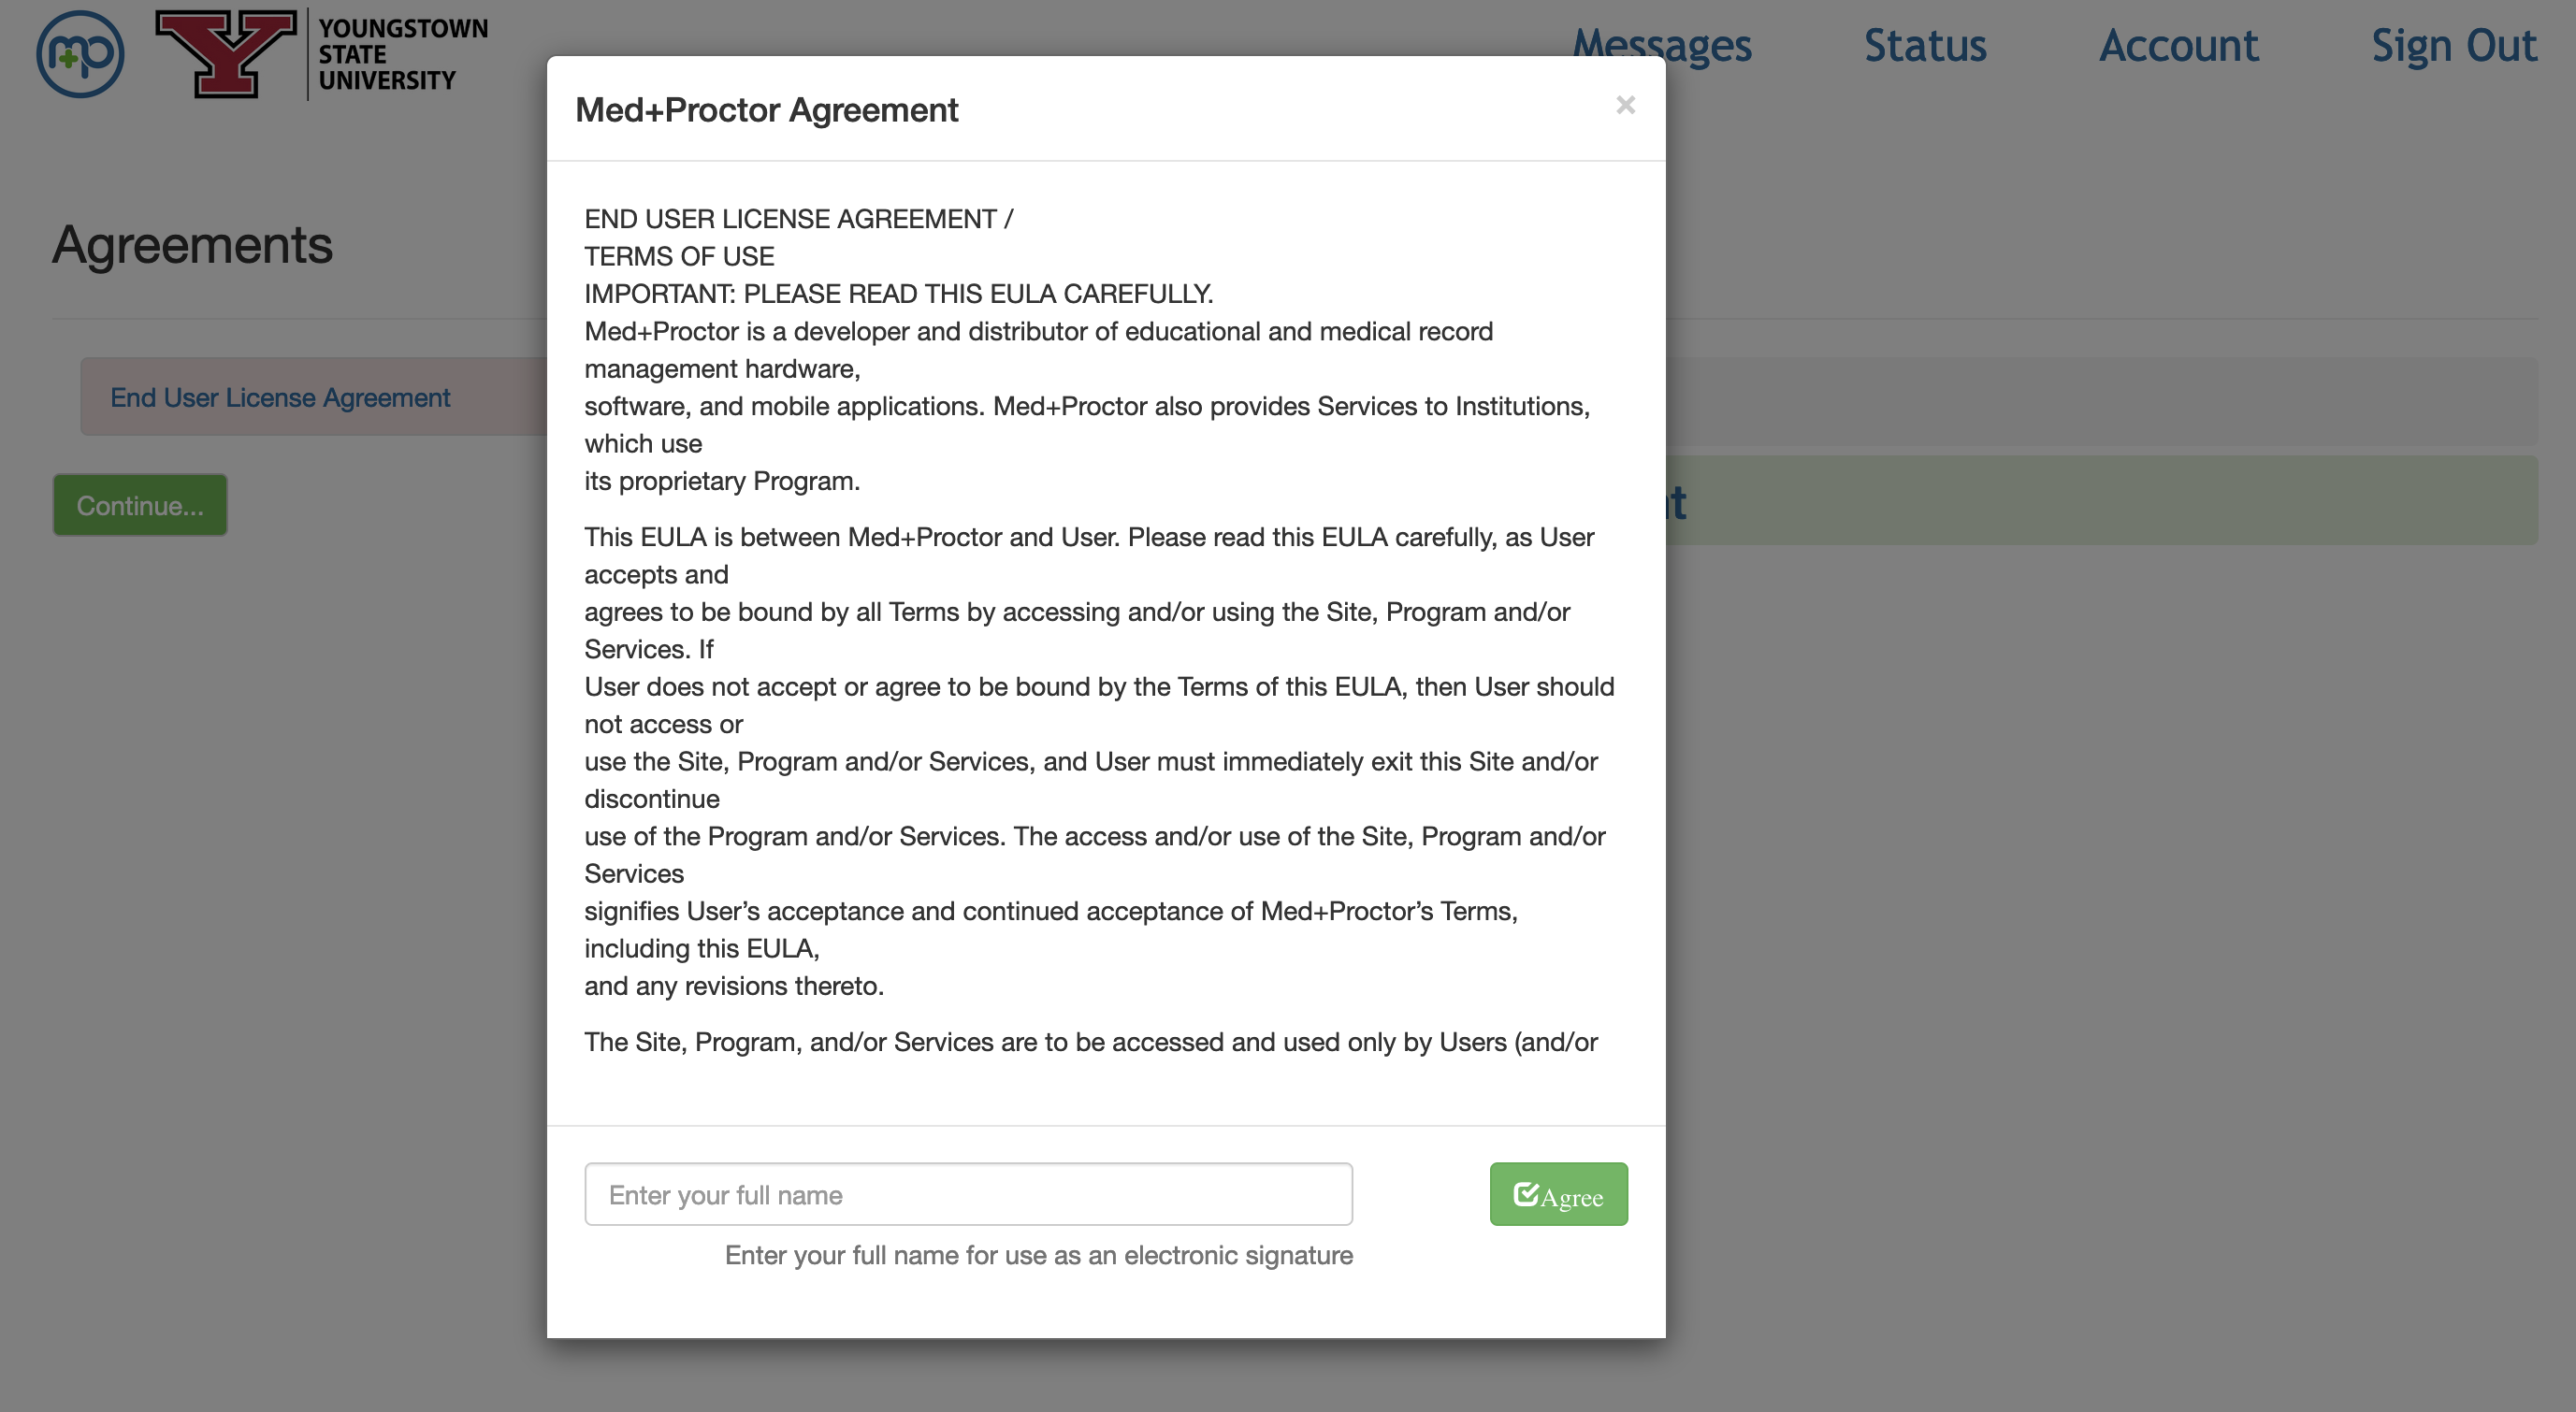 Accept the Med+Proctor user agreement